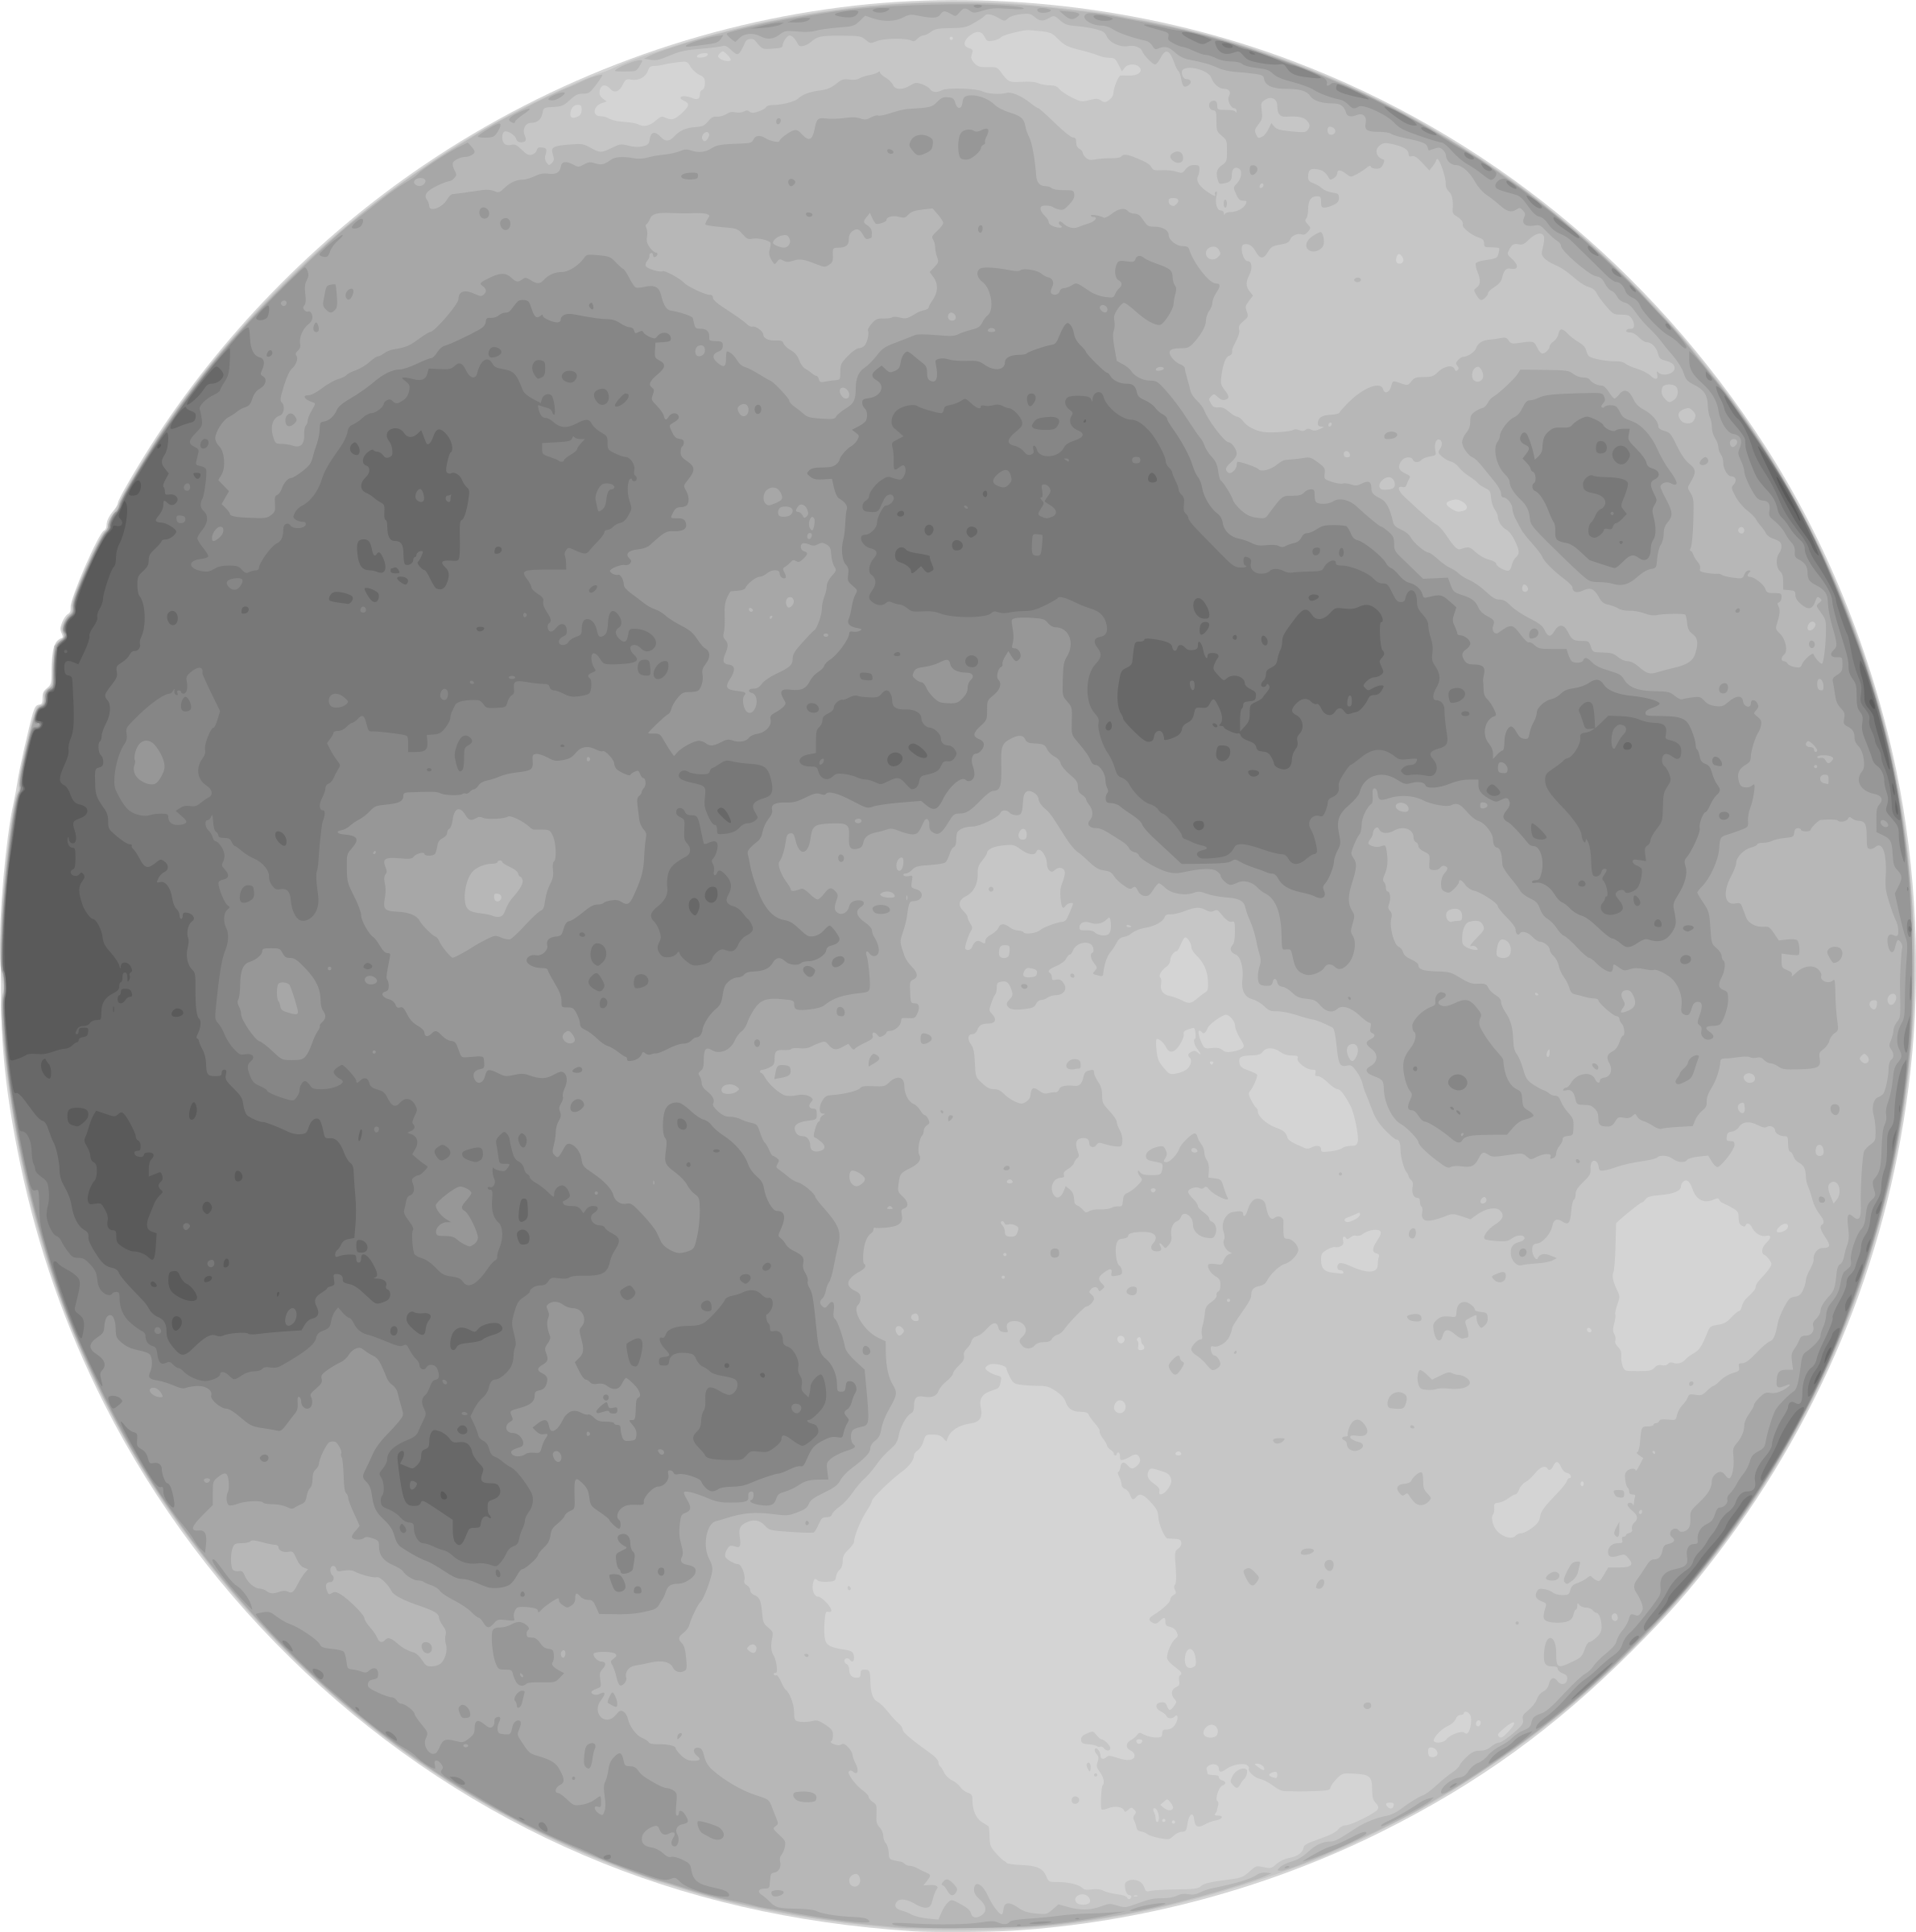 Full Moon PNG Black And White Transparent Full Moon Black And White.